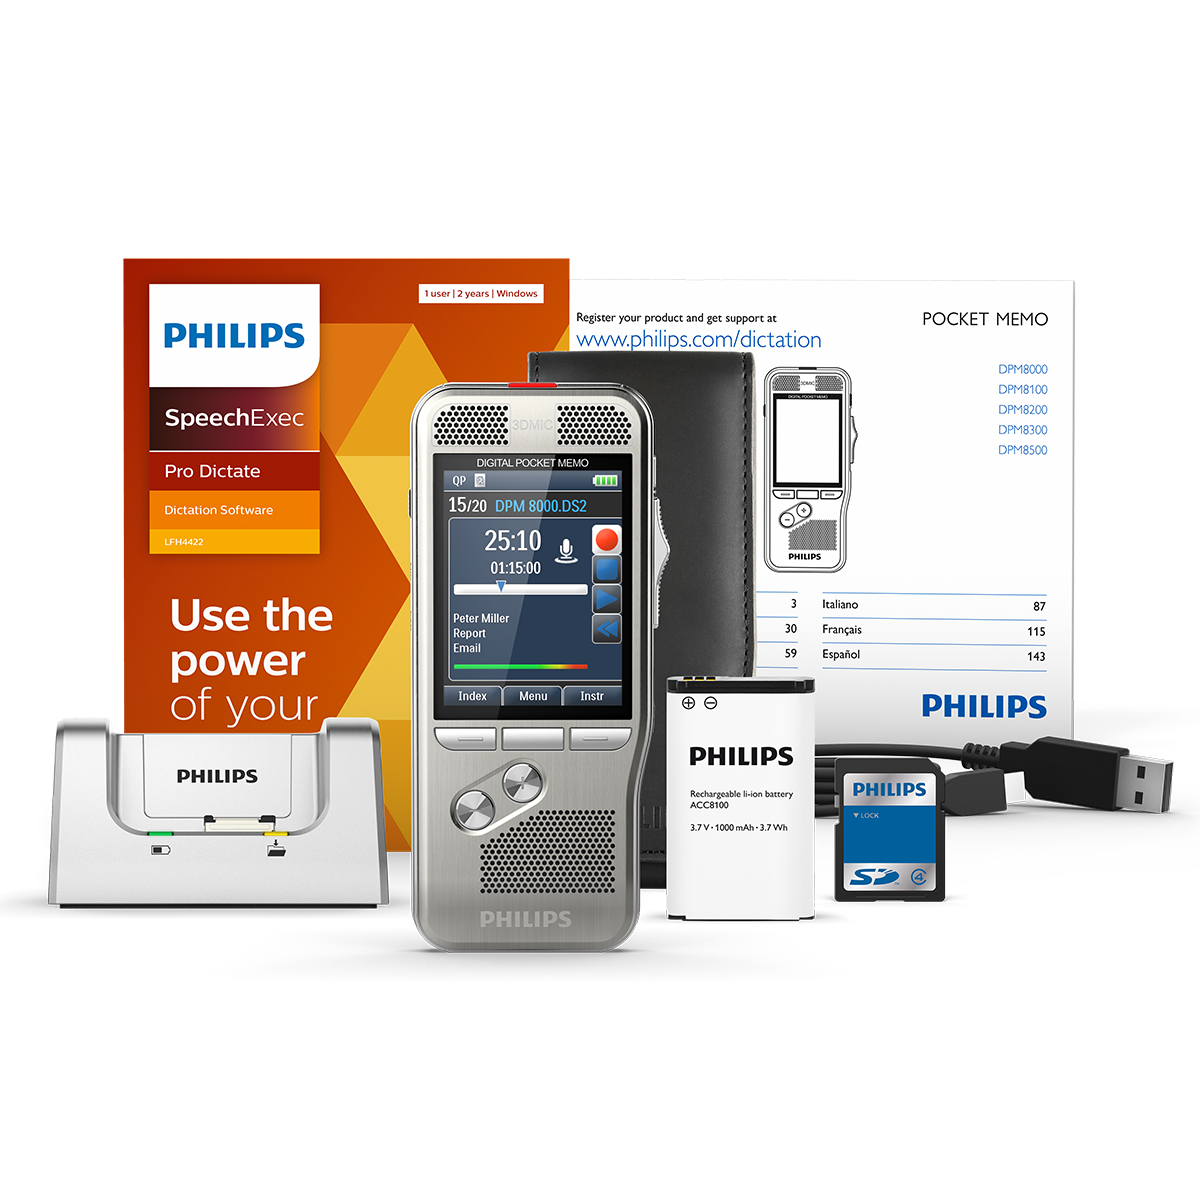 Philips DPM8000 Pocket Memo with SpeechExec Pro Dictate 11